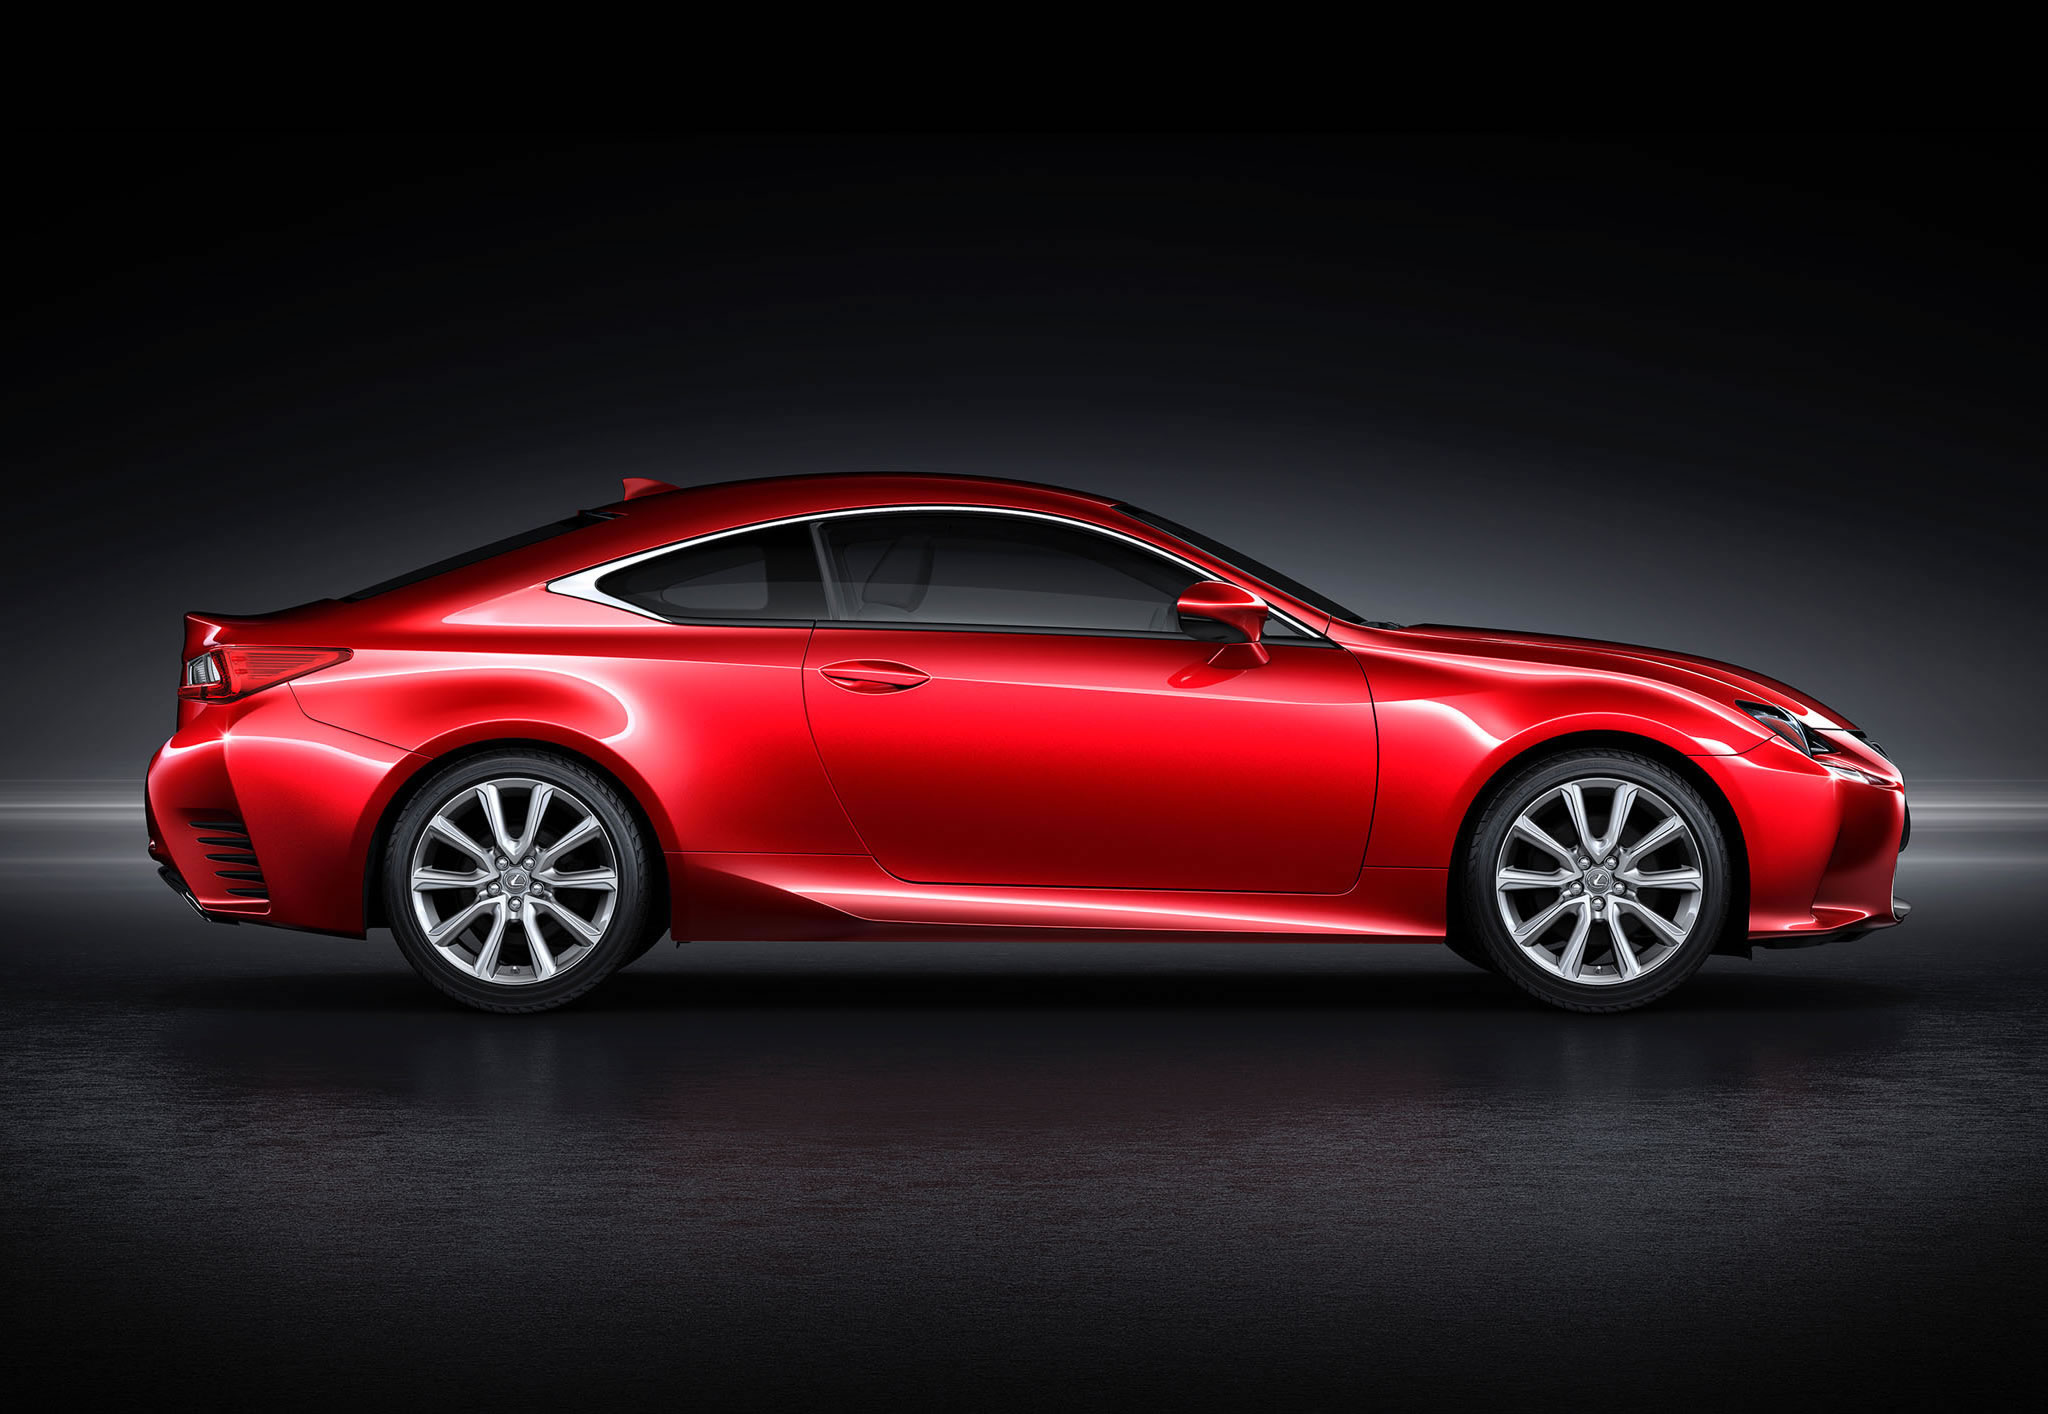 2015 lexus rc 350 coupe side photo infrared exterior paint color size 2048 x 1414 nr 5 22. Black Bedroom Furniture Sets. Home Design Ideas